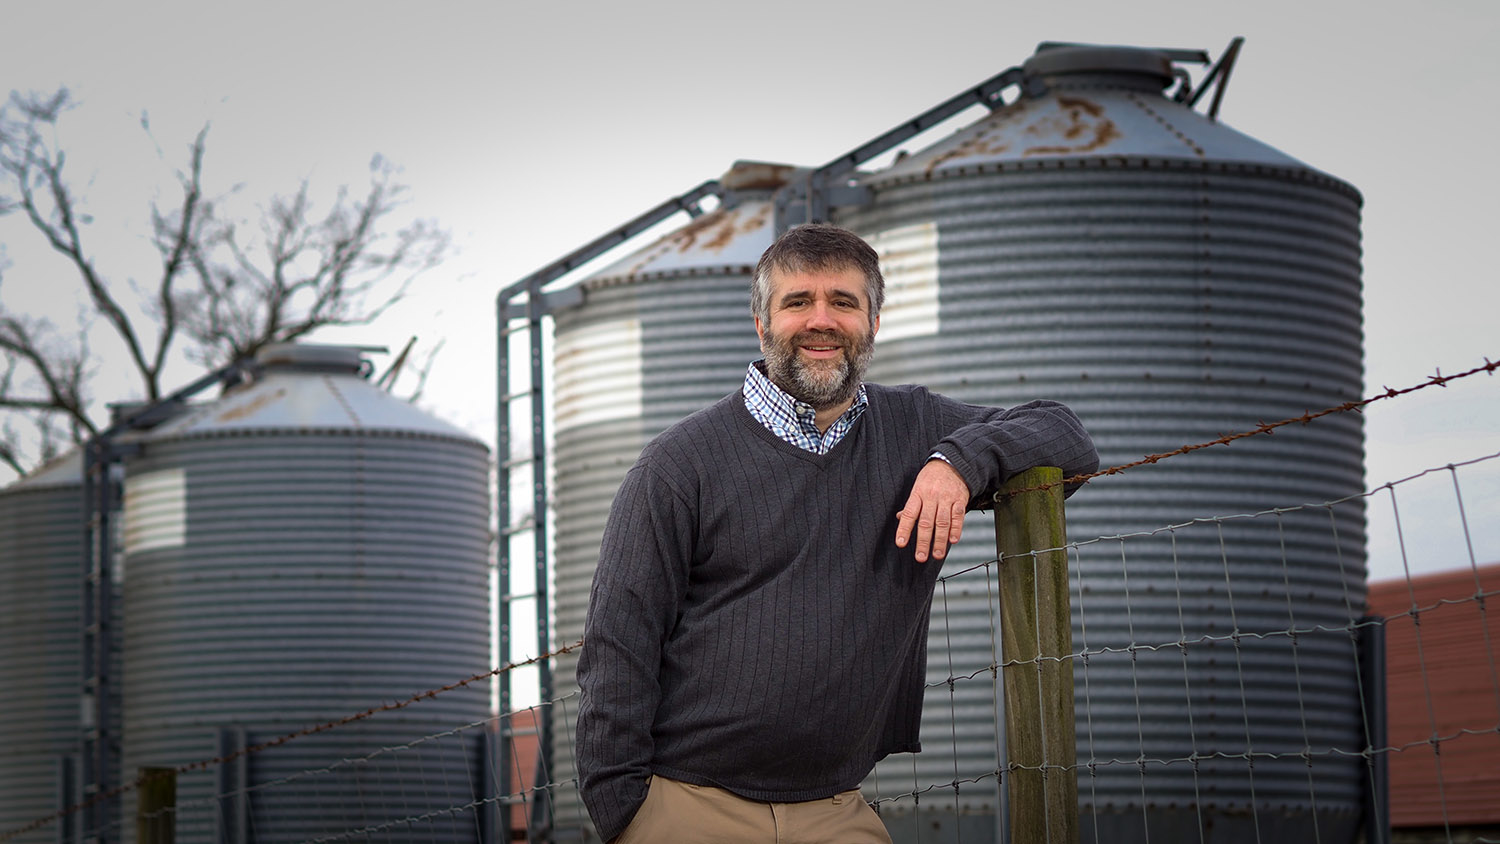 Man leaning against a fence post, with grain bins in the background.